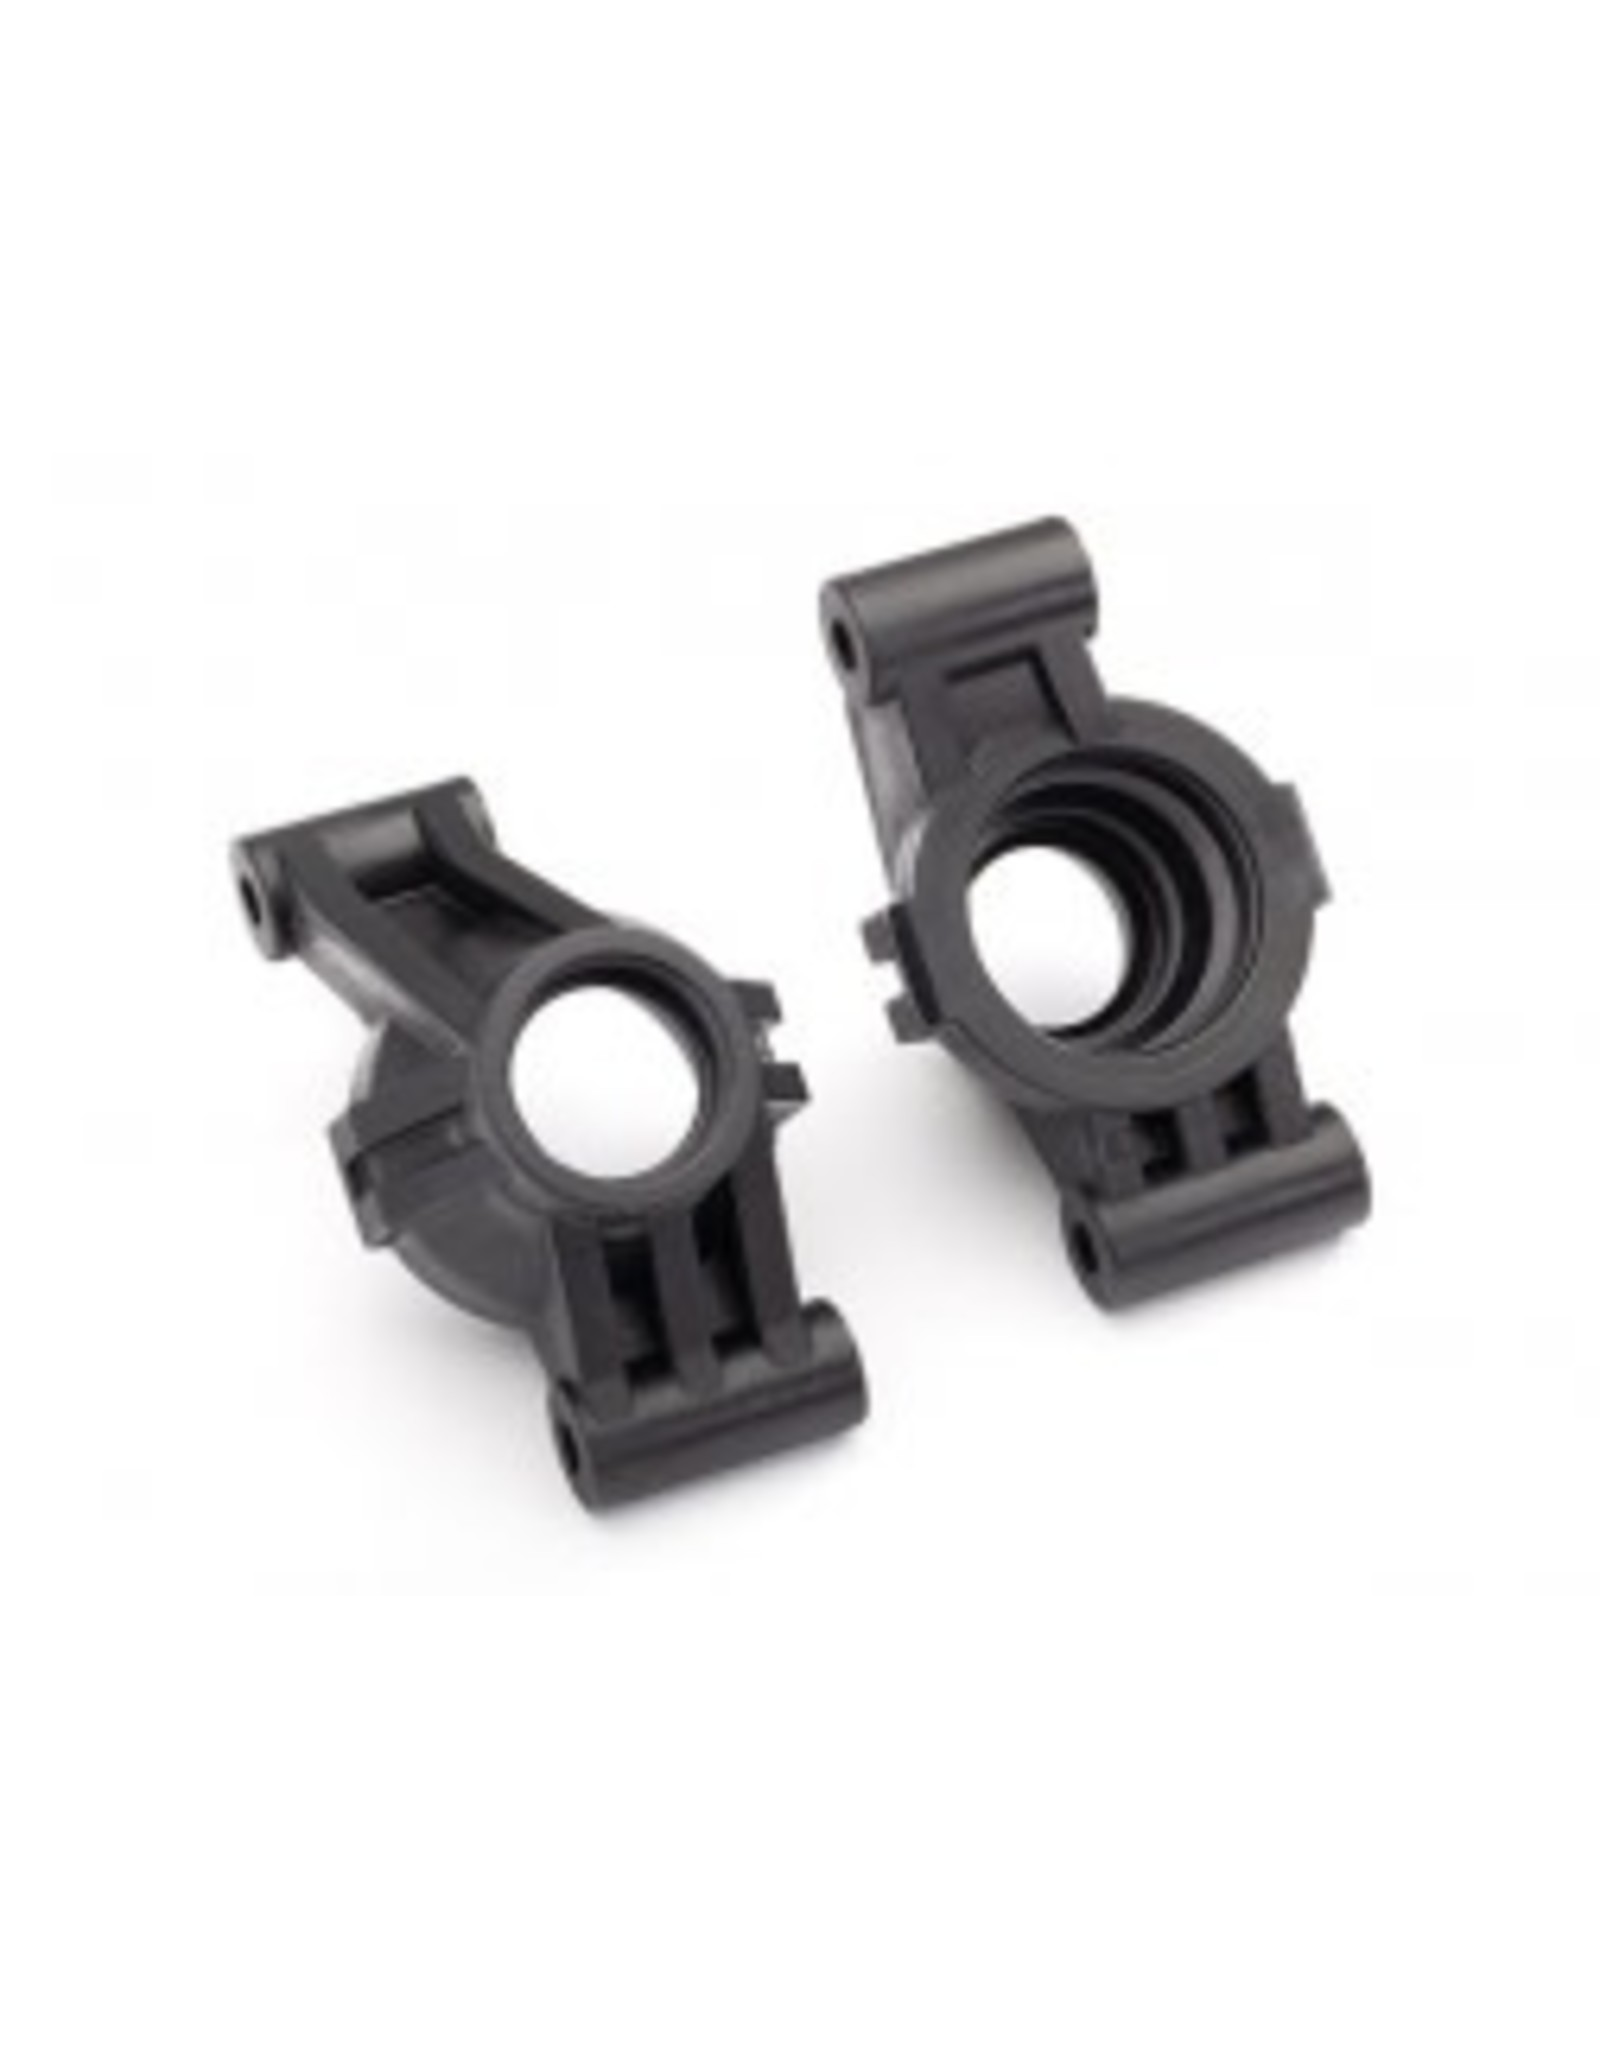 Traxxas [Carriers, stub axle (left & right)] Carriers, stub axle (left & right)